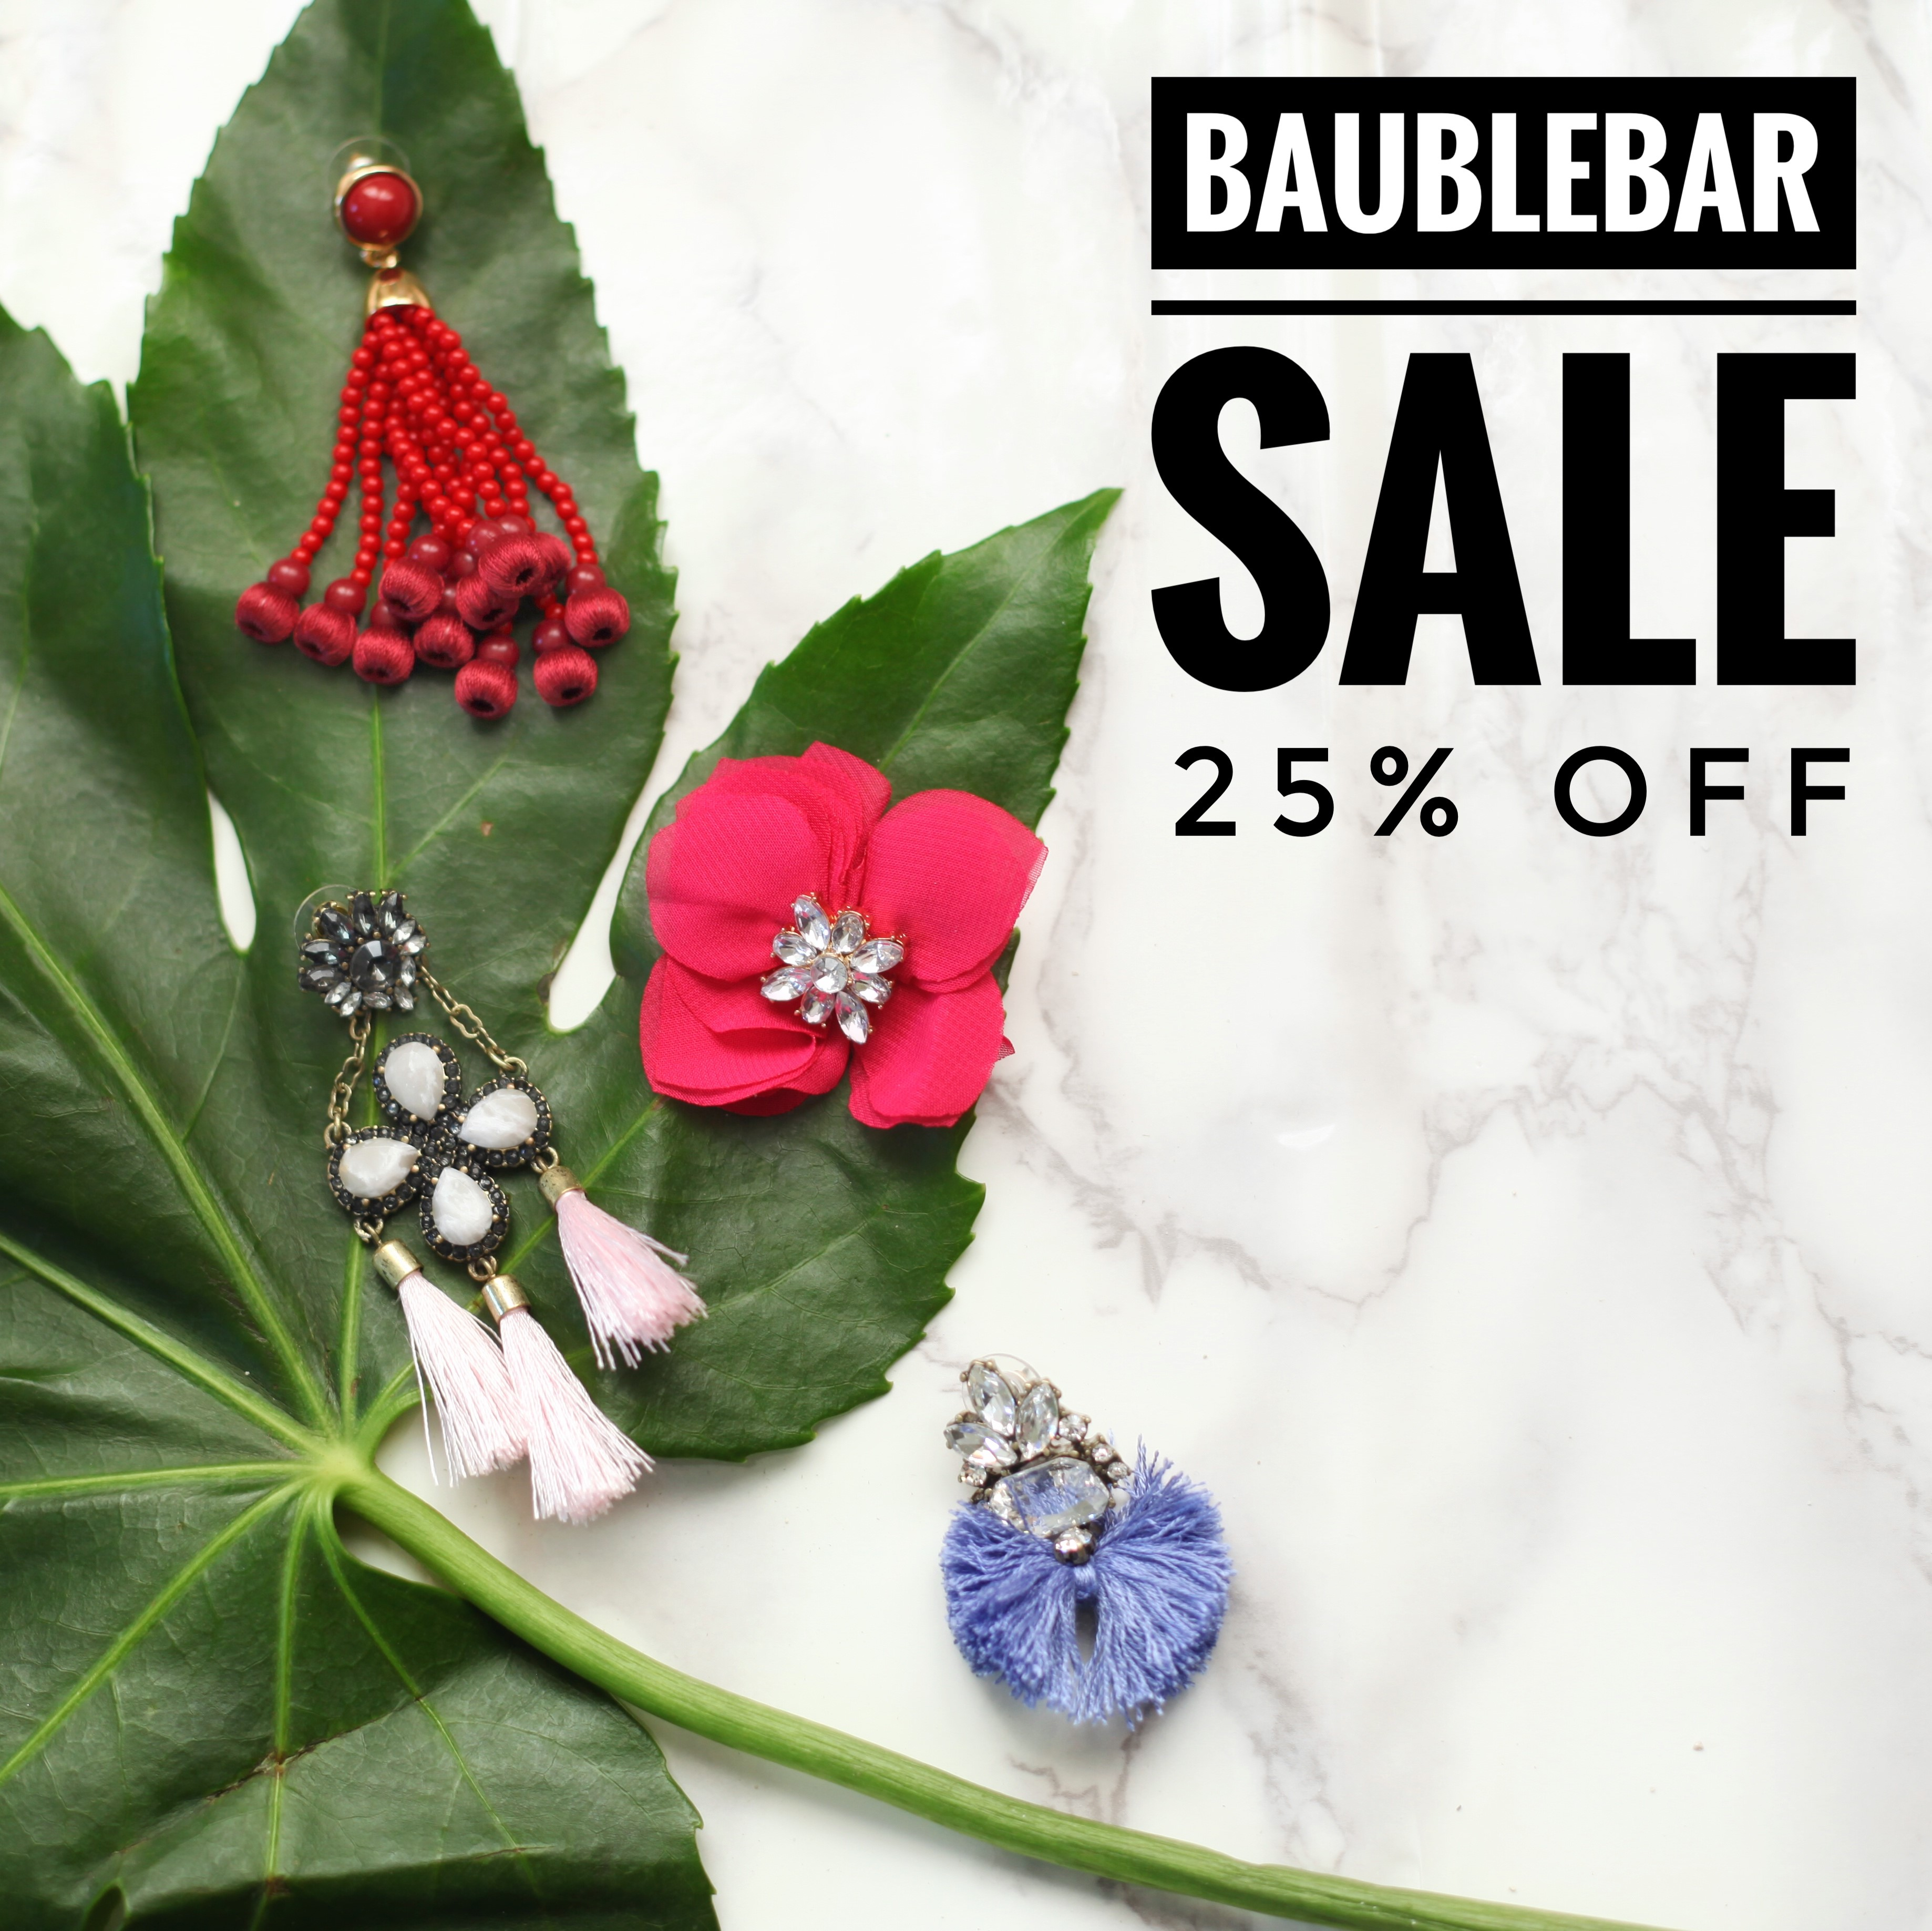 BaubleBar, one of the best online retailers for affordable jewelry, hosted a VIP Preview of their Winter Sample Sale today and luckily, I was able to attend after work! Located near the Flatiron District, the sample sale was held at the BaubleBar Headquarters.